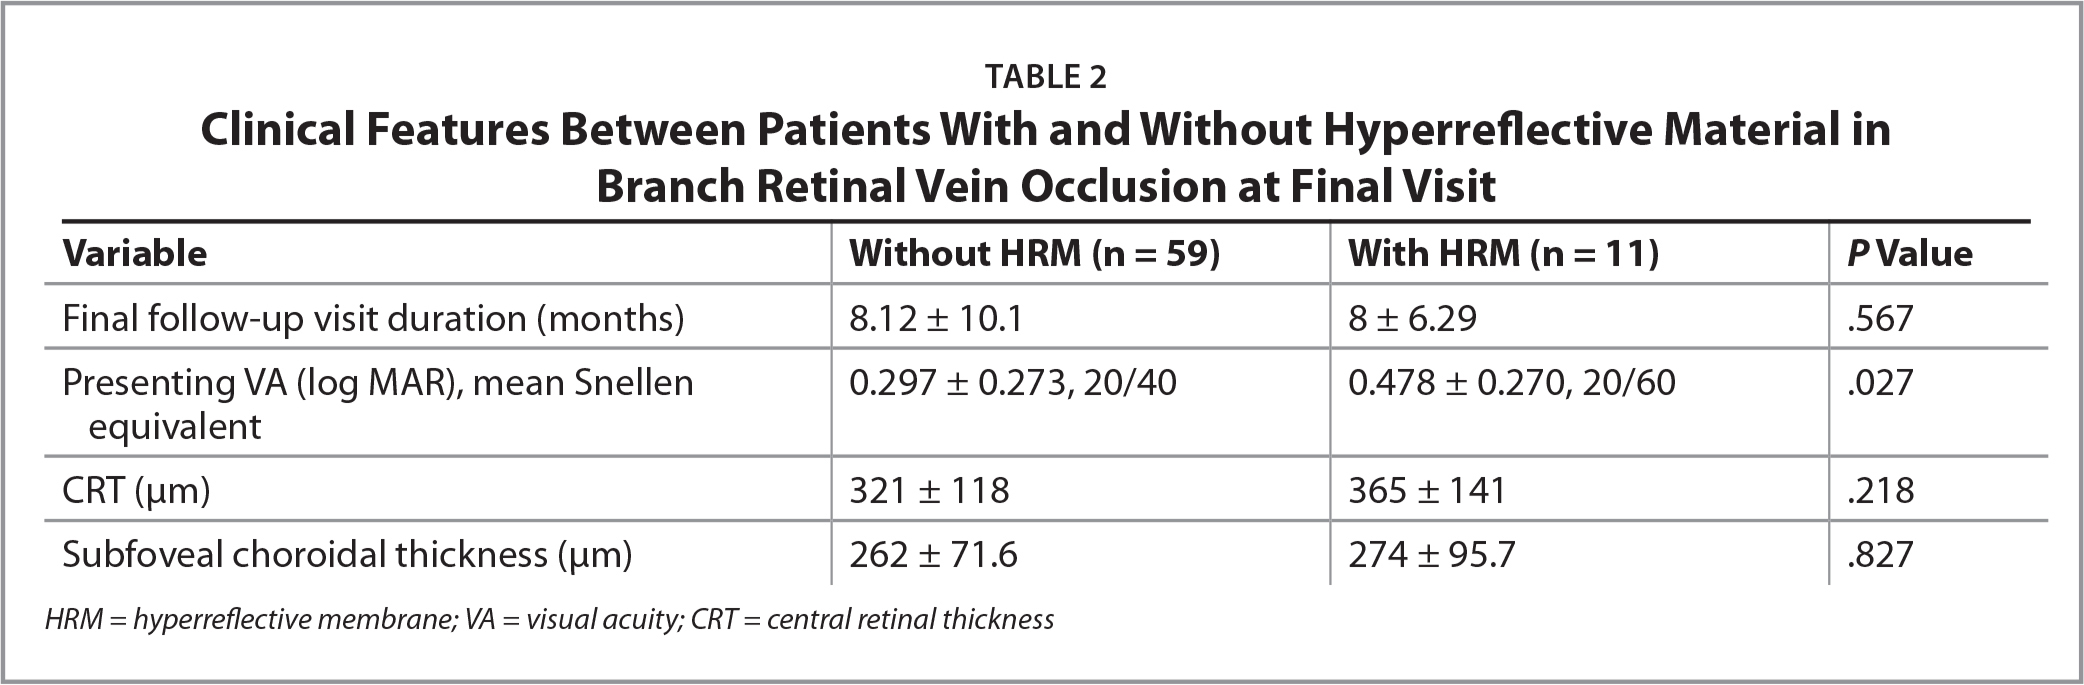 Clinical Features Between Patients With and Without Hyperreflective Material inBranch Retinal Vein Occlusion at Final Visit